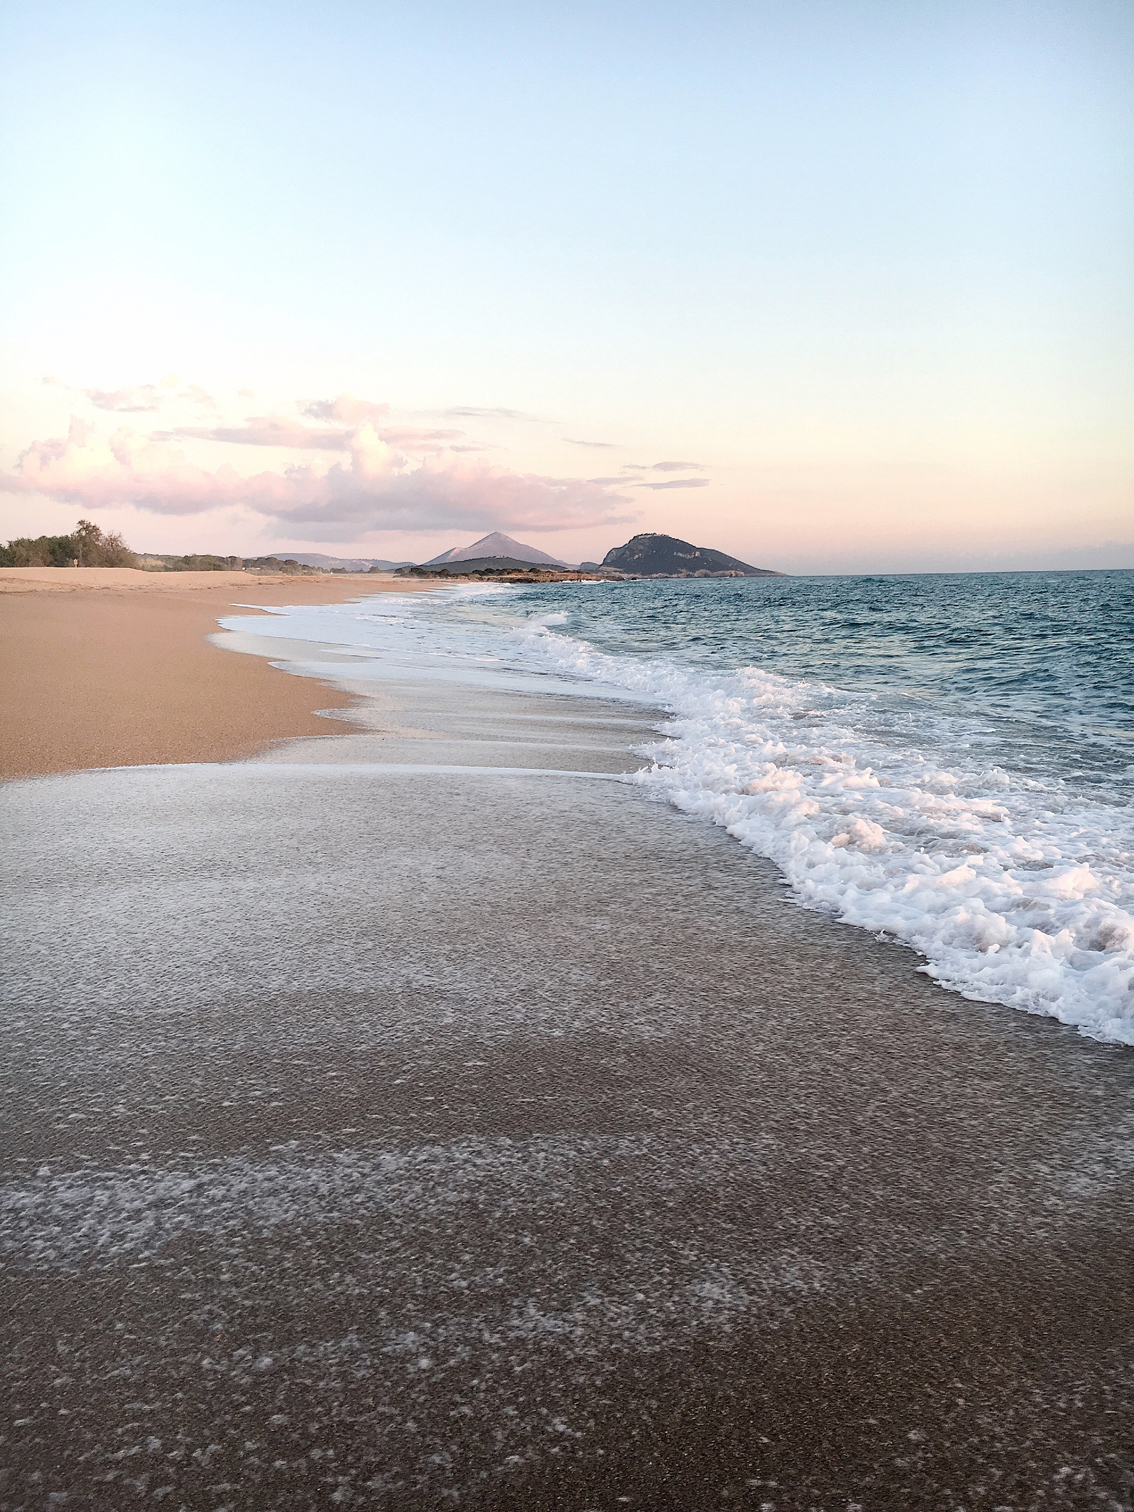 19-1 Costa Navarino, an unspoiled Greek paradise.